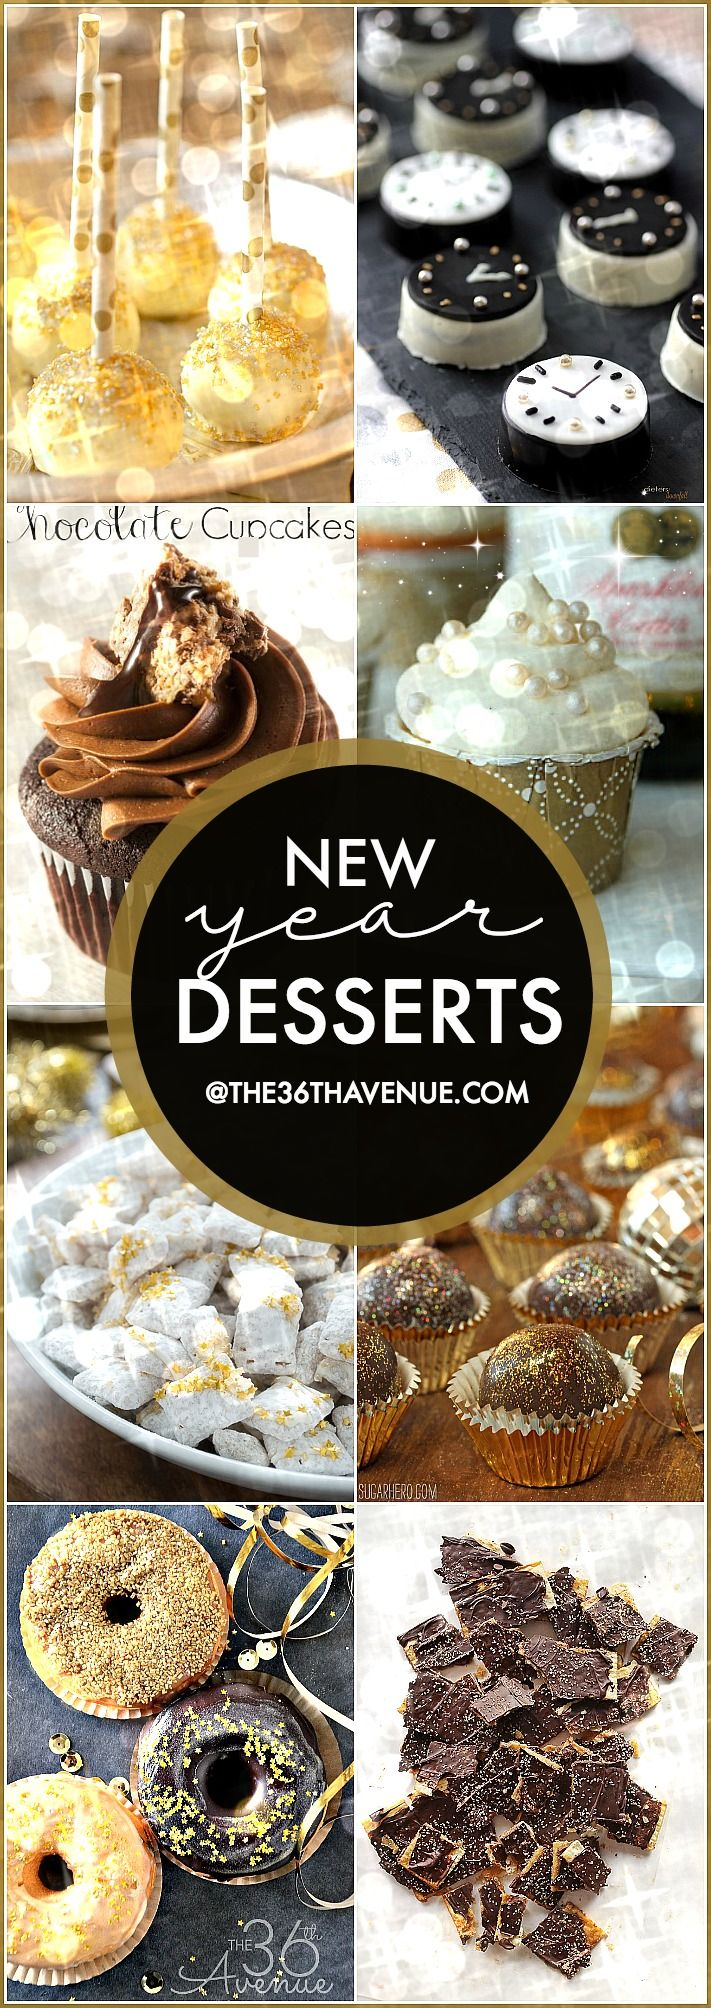 New Year Dessert Recipes - These easy recipes are festive and delicious! Perfect for New Year's Eve or any sparkling party! PIN IT NOW and make them later!